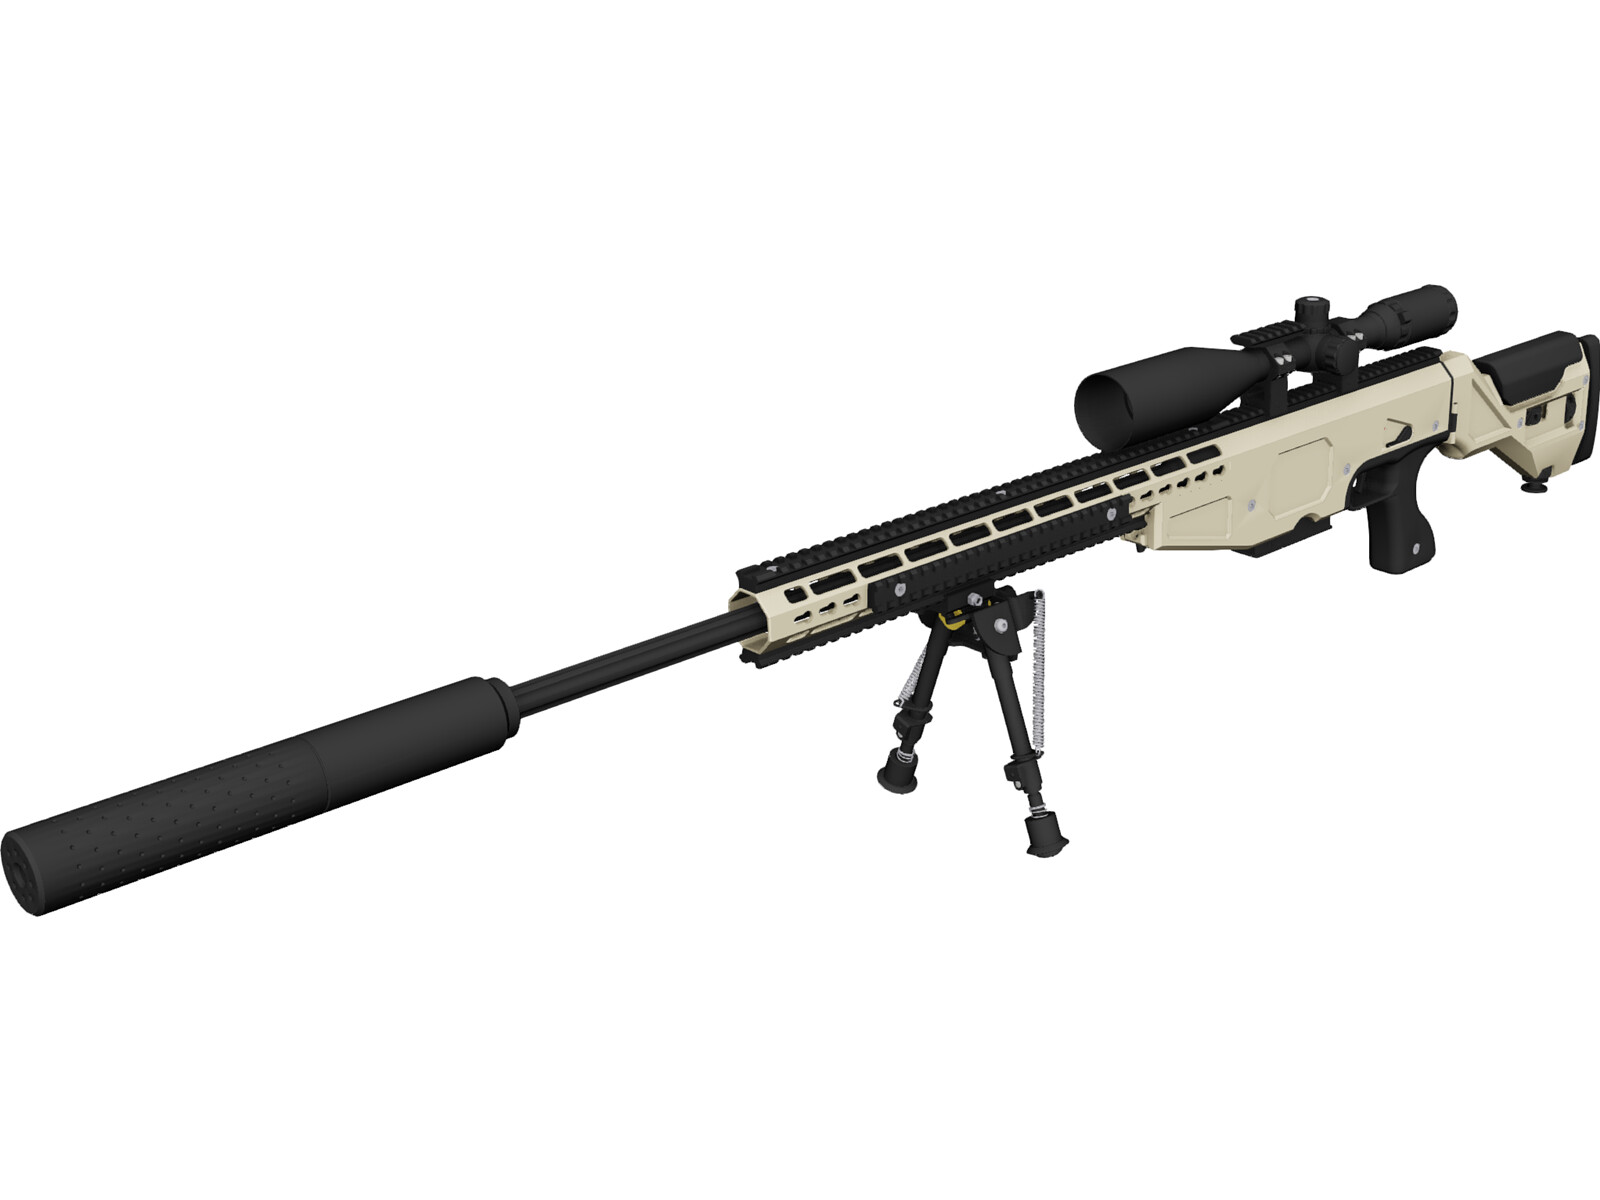 .338 Lapua Magnum Sniper Rifle 3D CAD Model